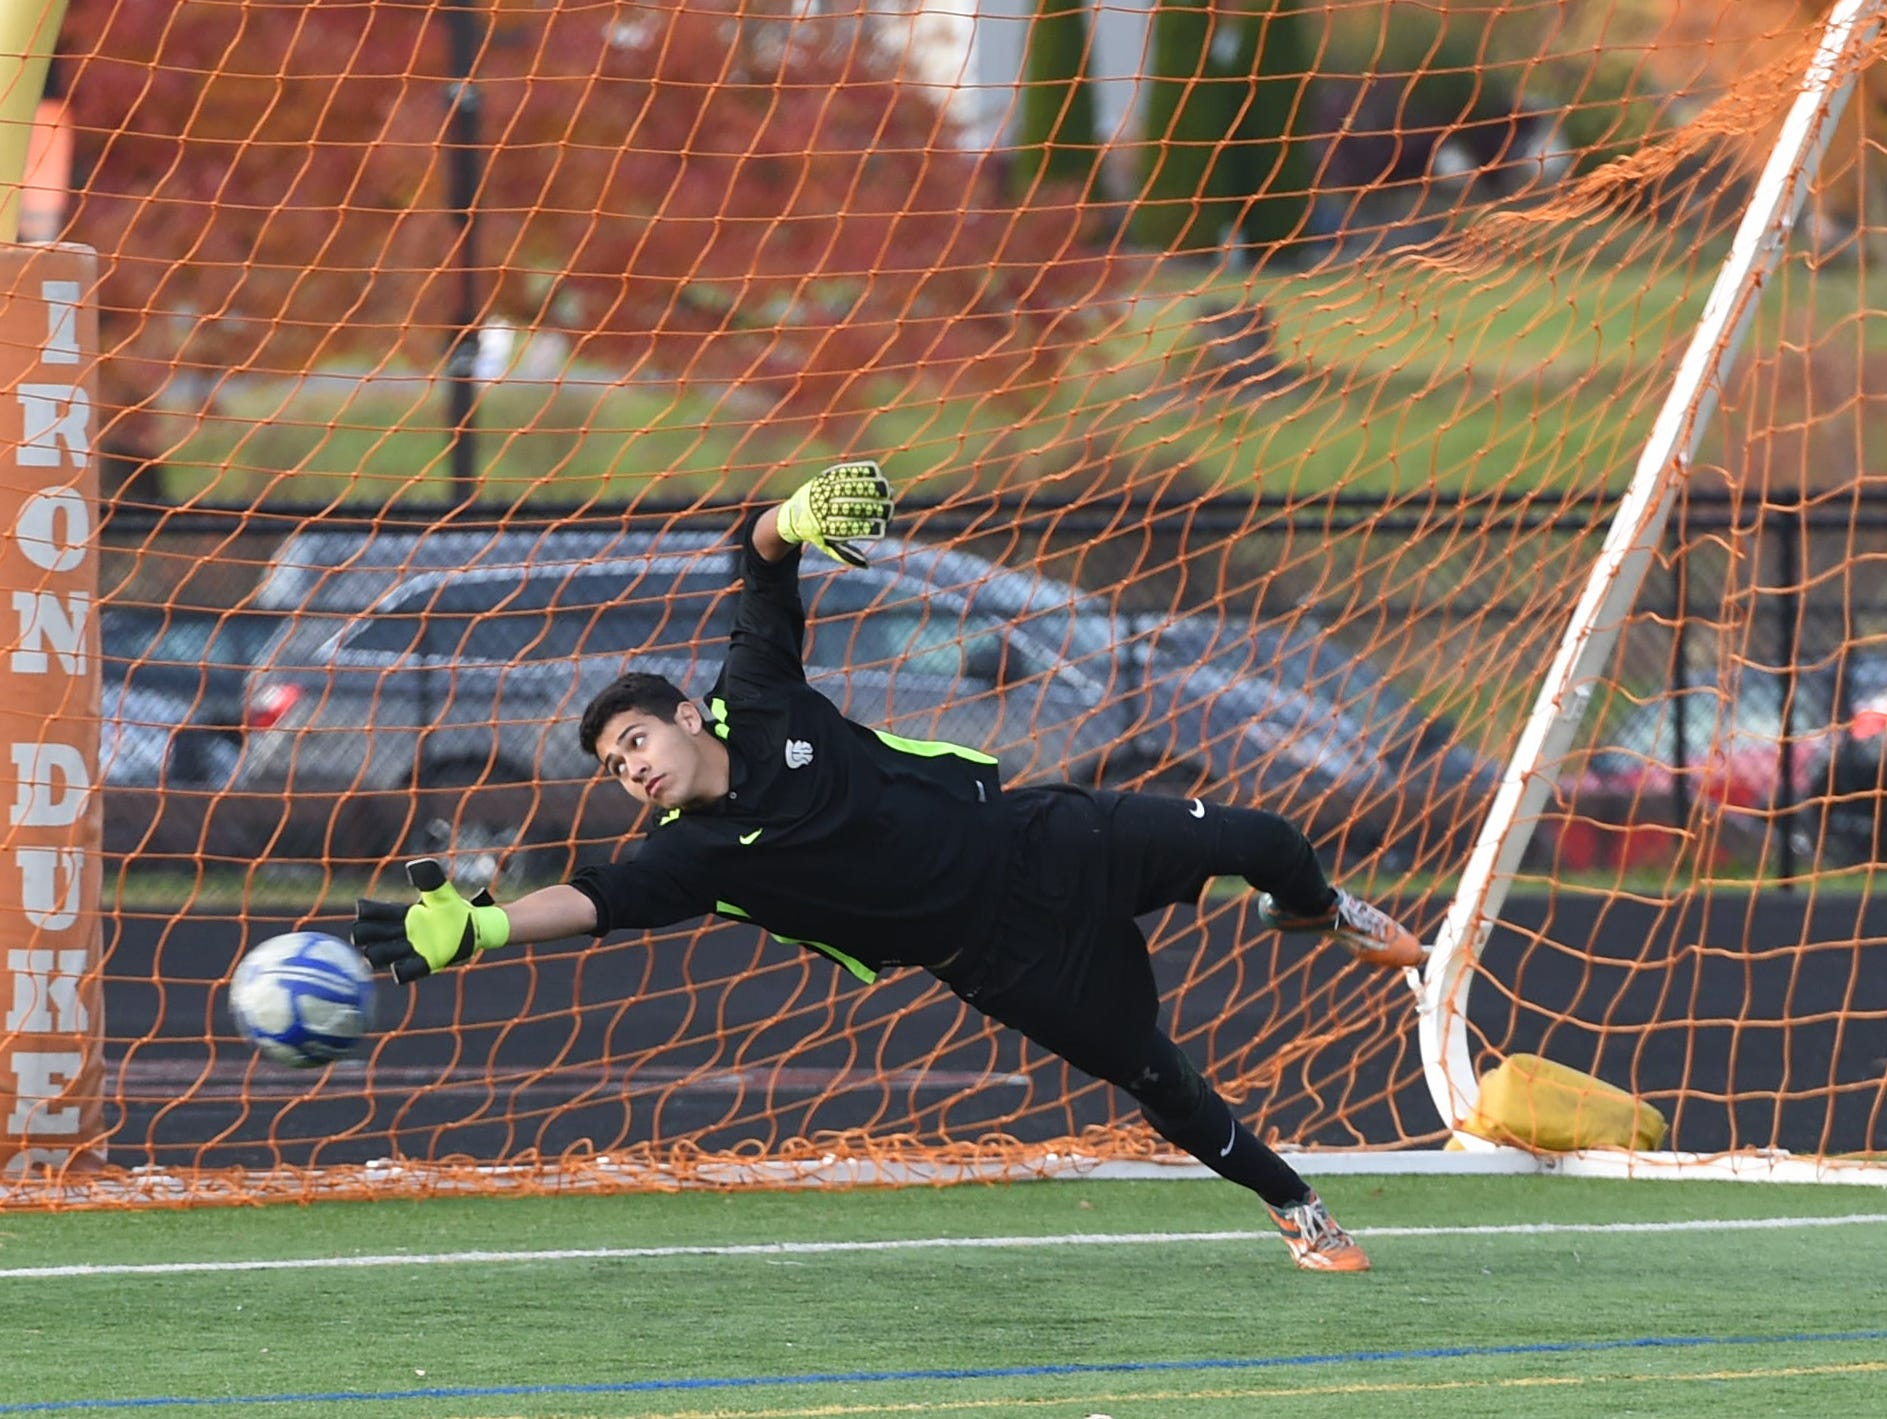 Spackenkill's Ryan Espinoza deflects a penalty kick during the Section 9 Class B final held in Marlboro on Saturday.